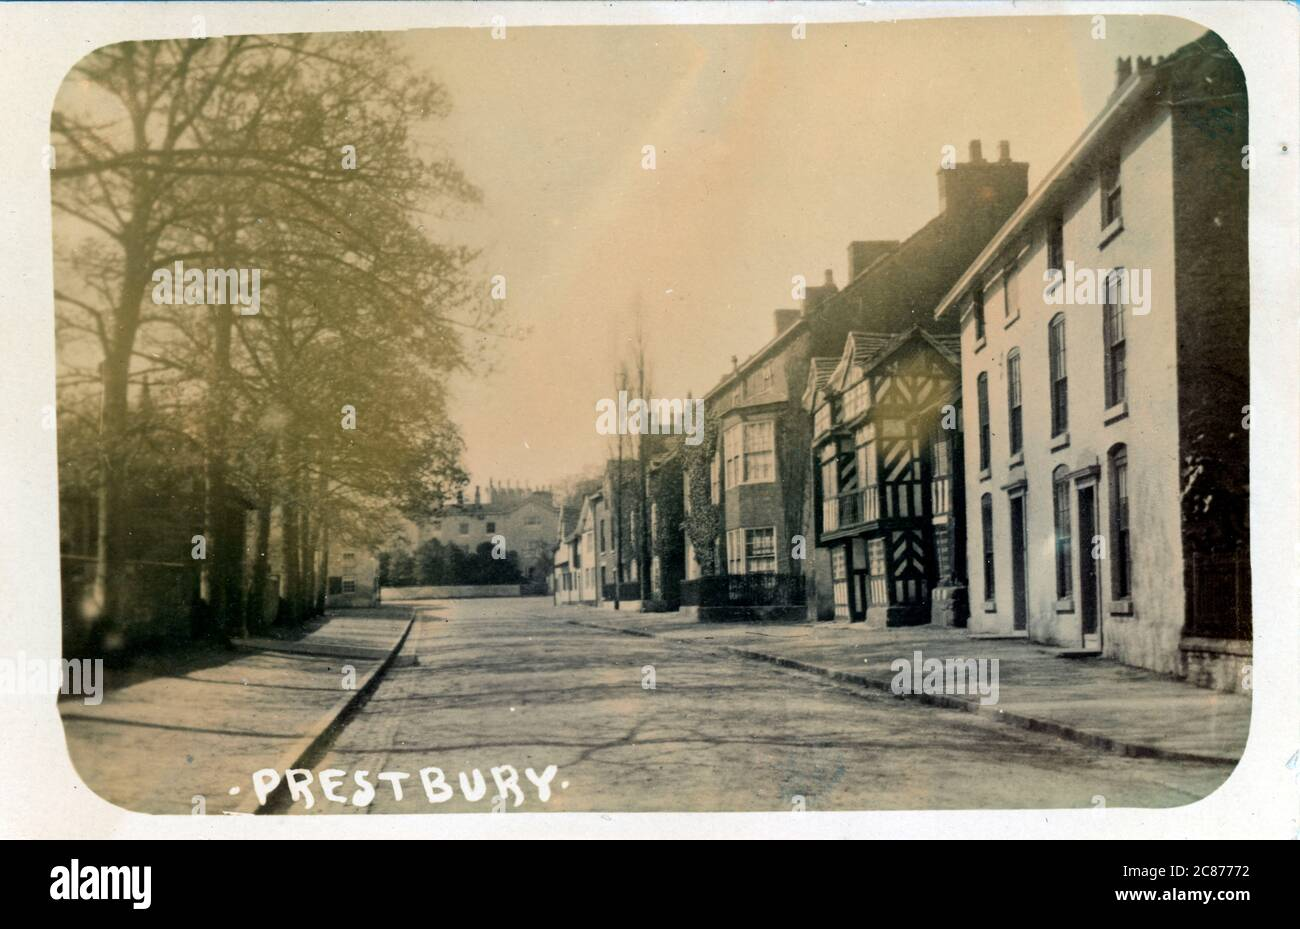 The Village, Prestbury, Macclesfield, Cheshire, Angleterre. Banque D'Images